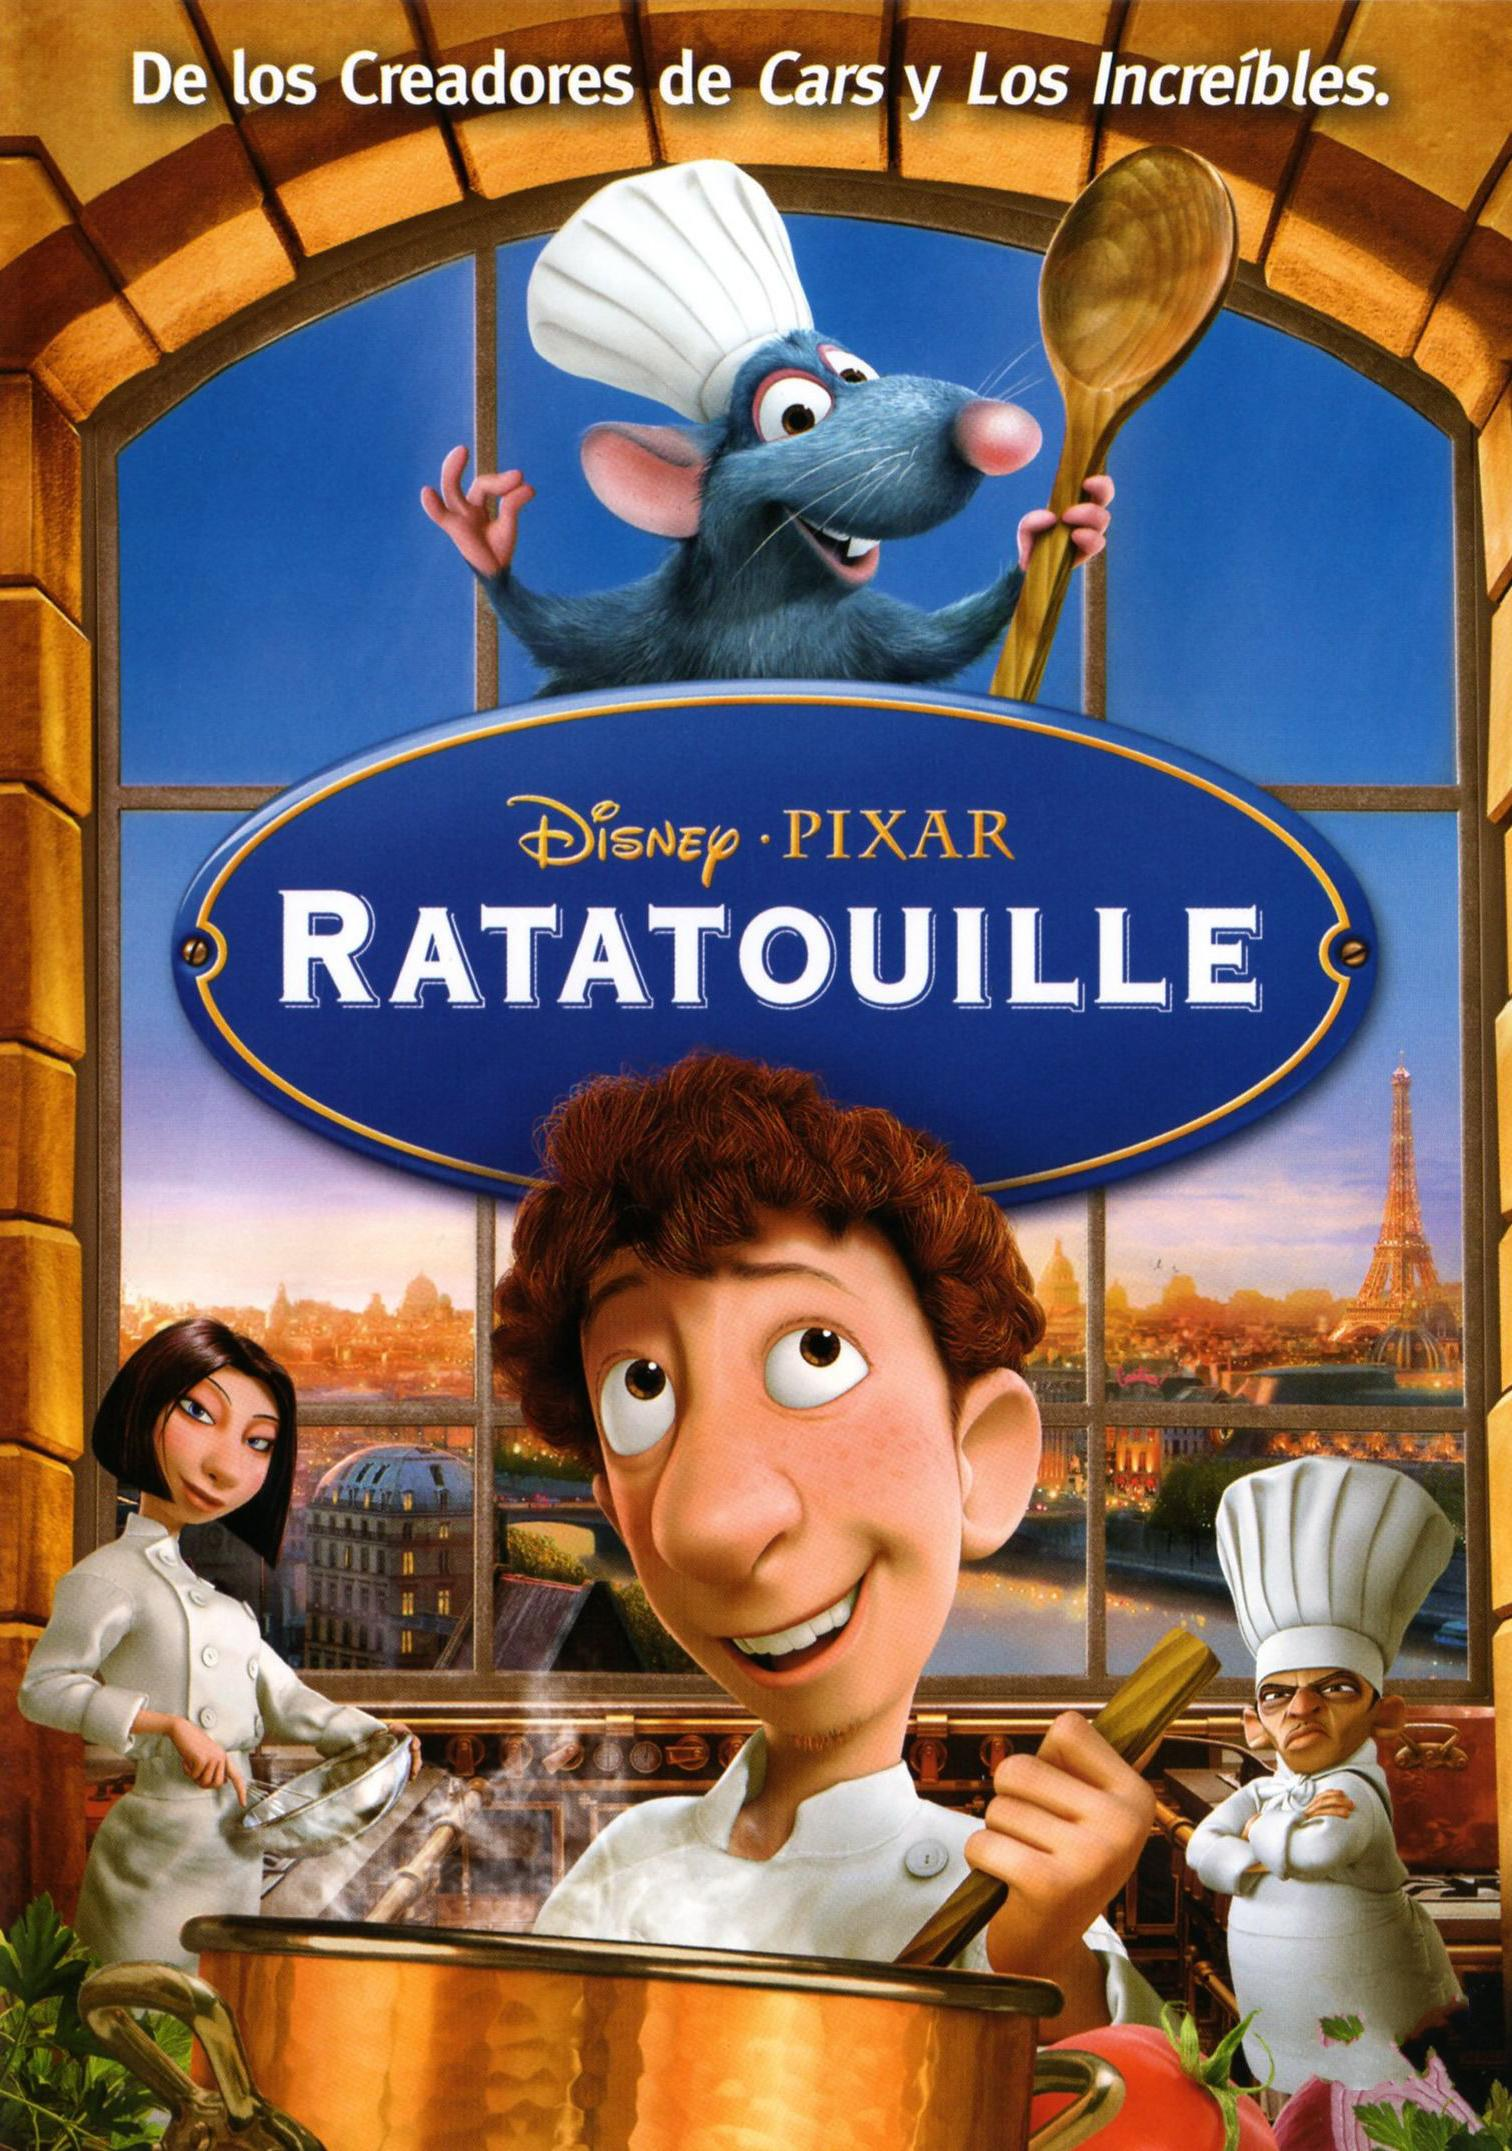 http://diariodeunacinefila.files.wordpress.com/2012/01/poster-de-ratatouille.jpg